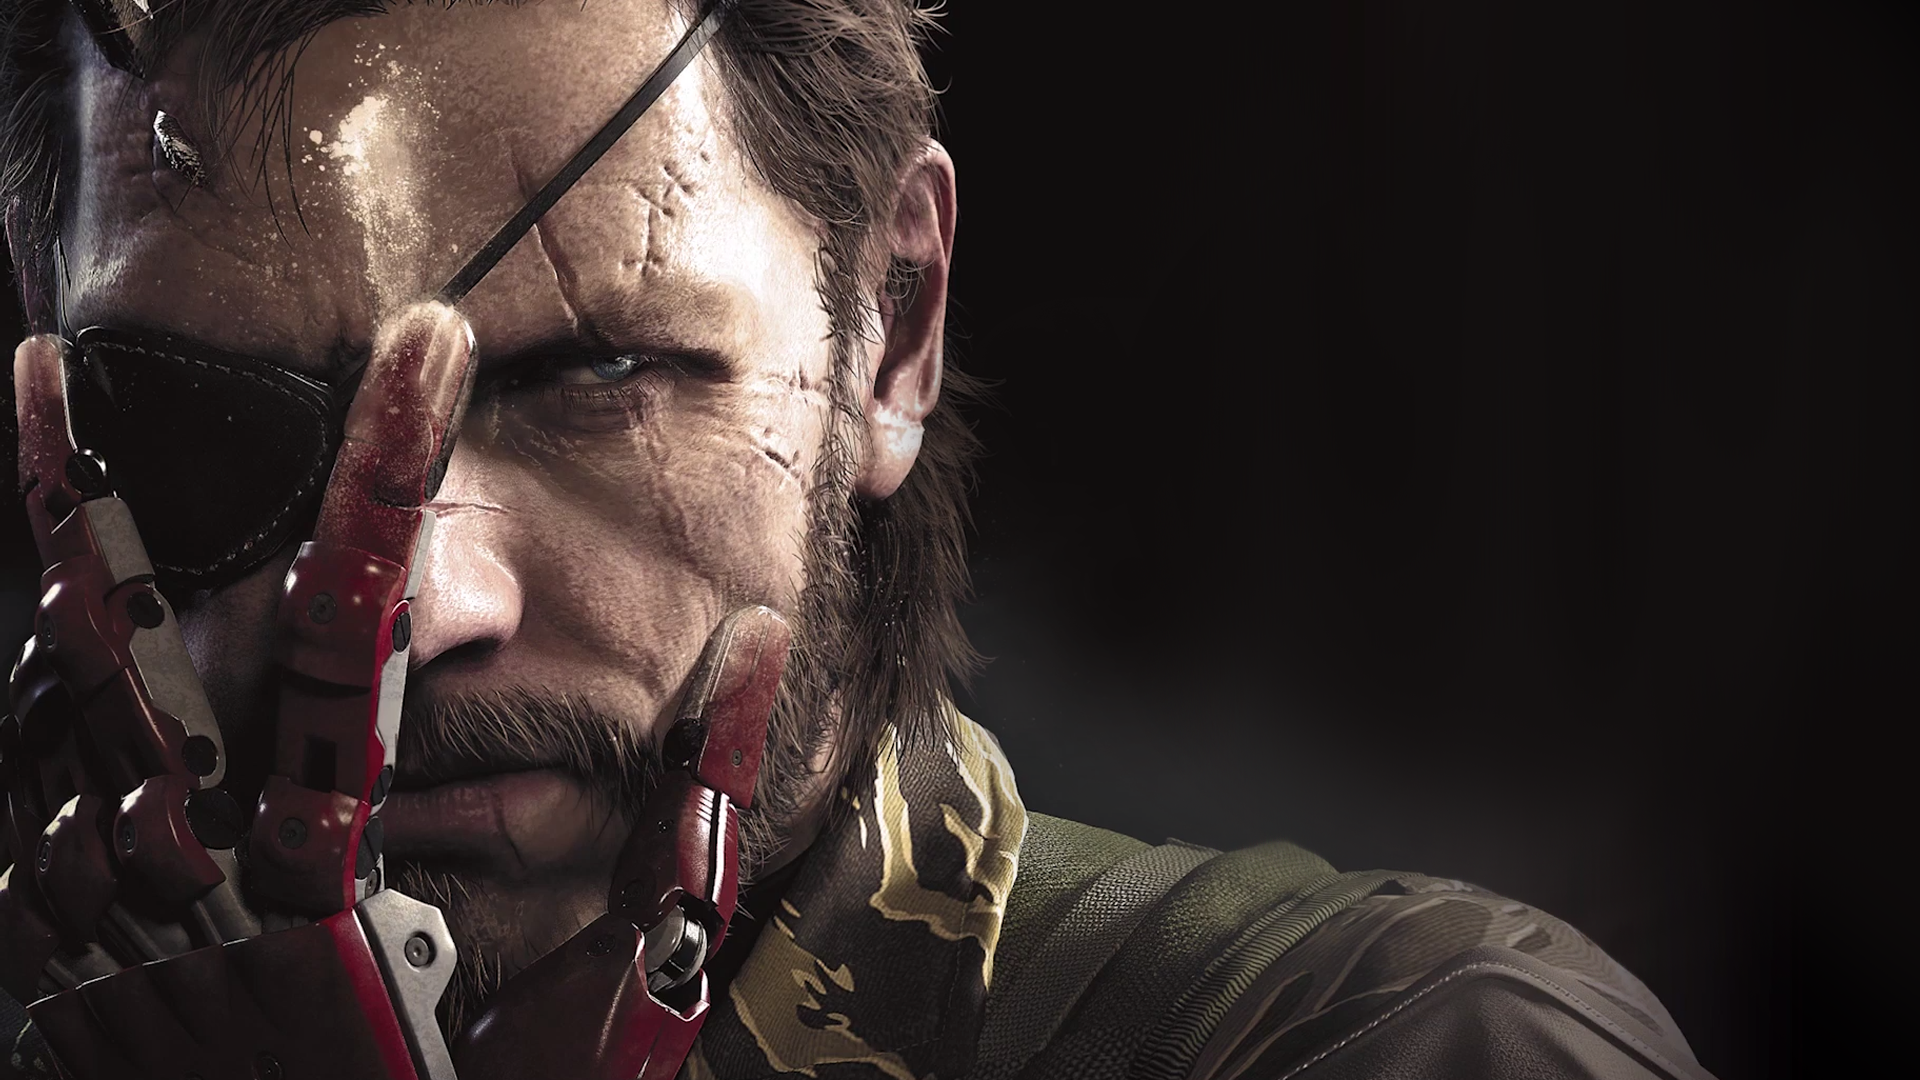 metal gear solid v: the phantom pain - minimum pc requirements list